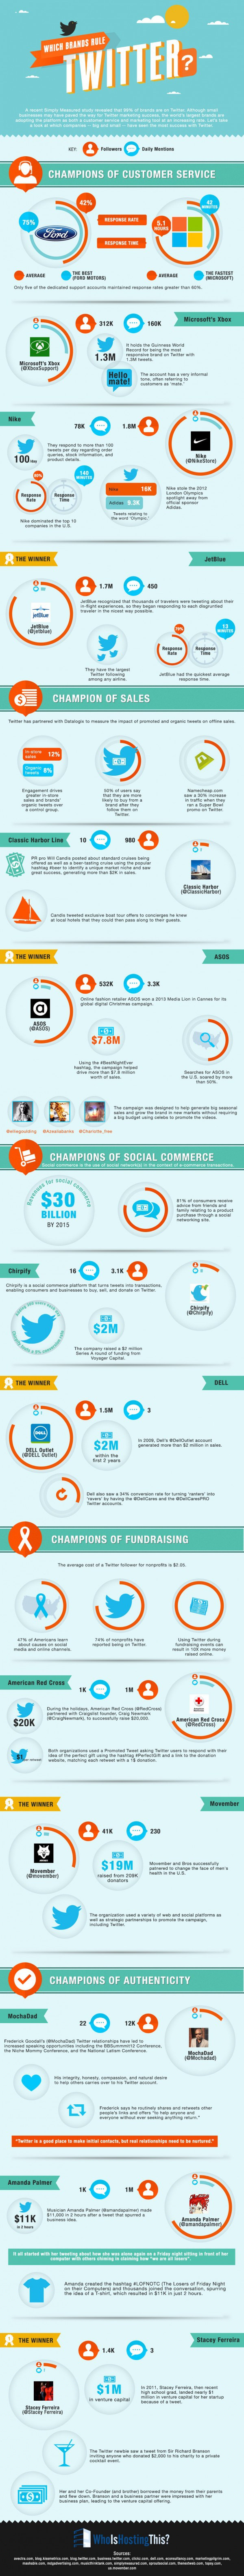 Which brands rule twitter?, by whoishostingthis.com